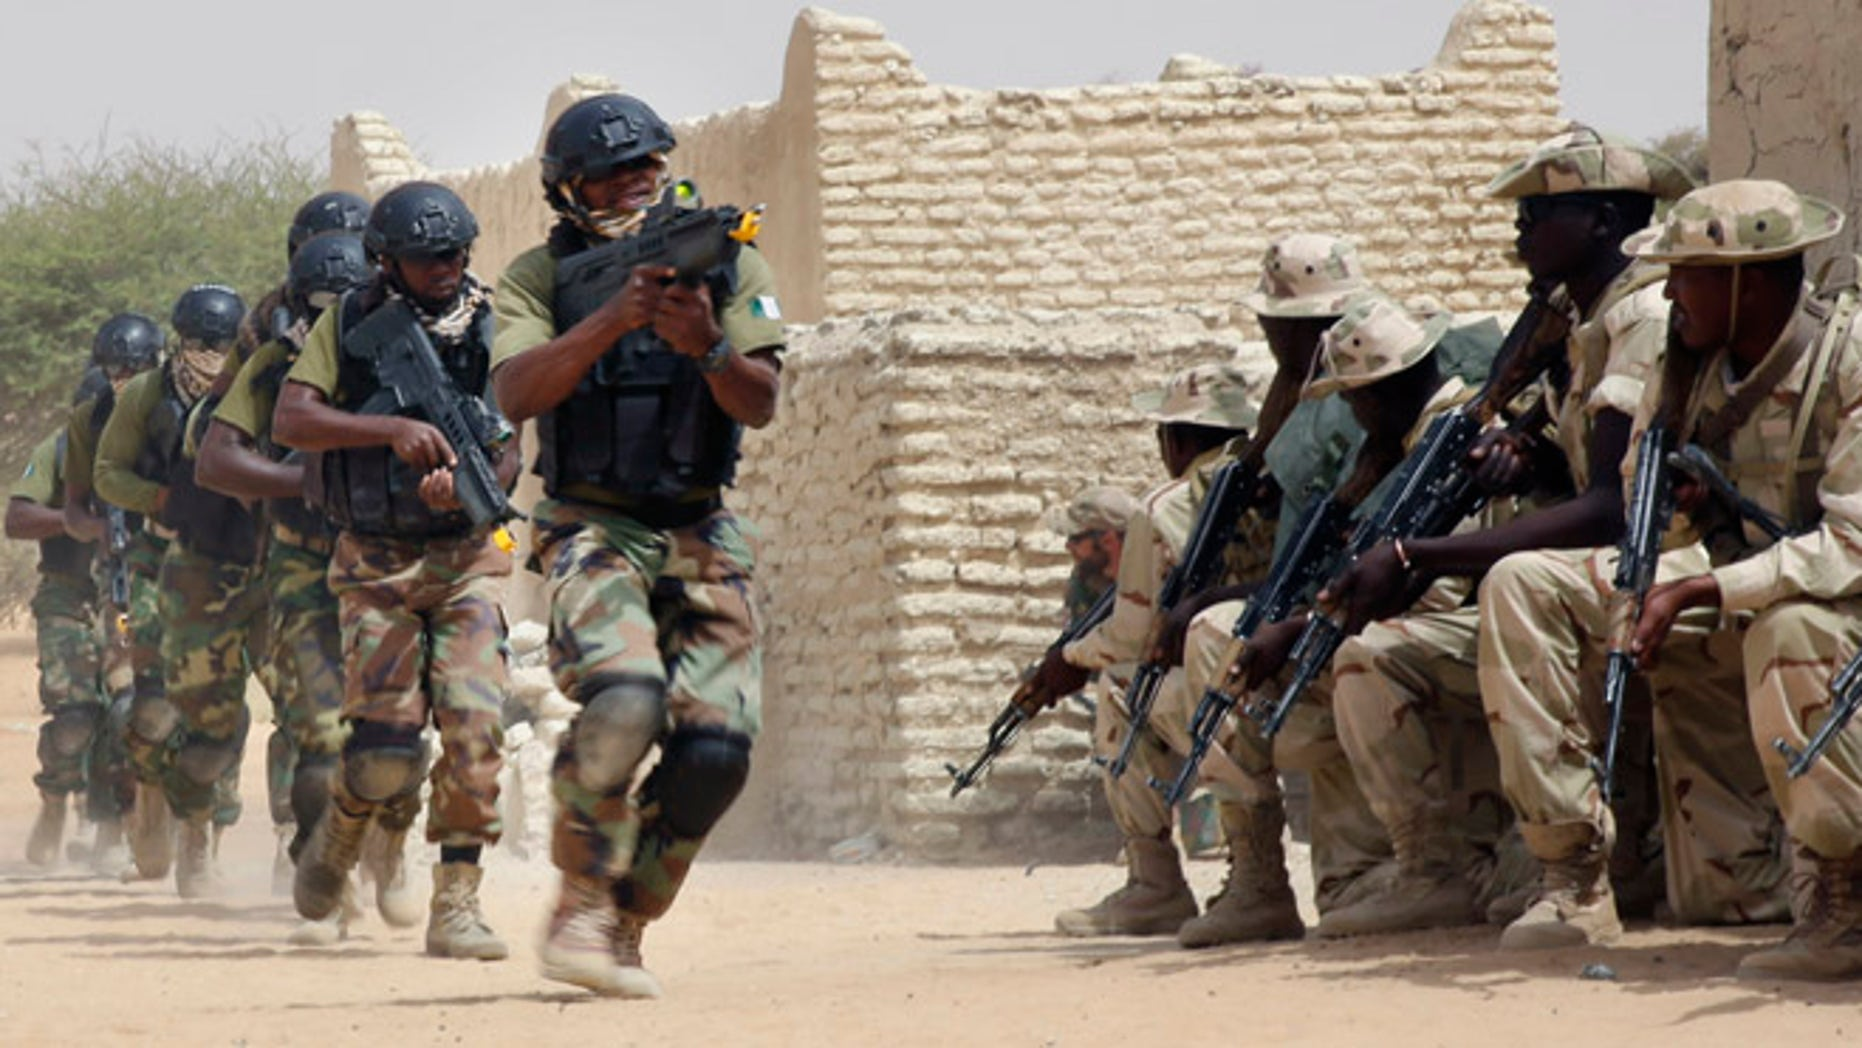 March 7, 2015: Nigerian special forces run past Chadian troops in an hostage rescue exercise at the end of the Flintlock exercise in Mao, Chad. The U.S. military and its Western partners conduct this training annually and set up plans long before Boko Haram began attacking its neighbors Niger, Chad and Cameroon.